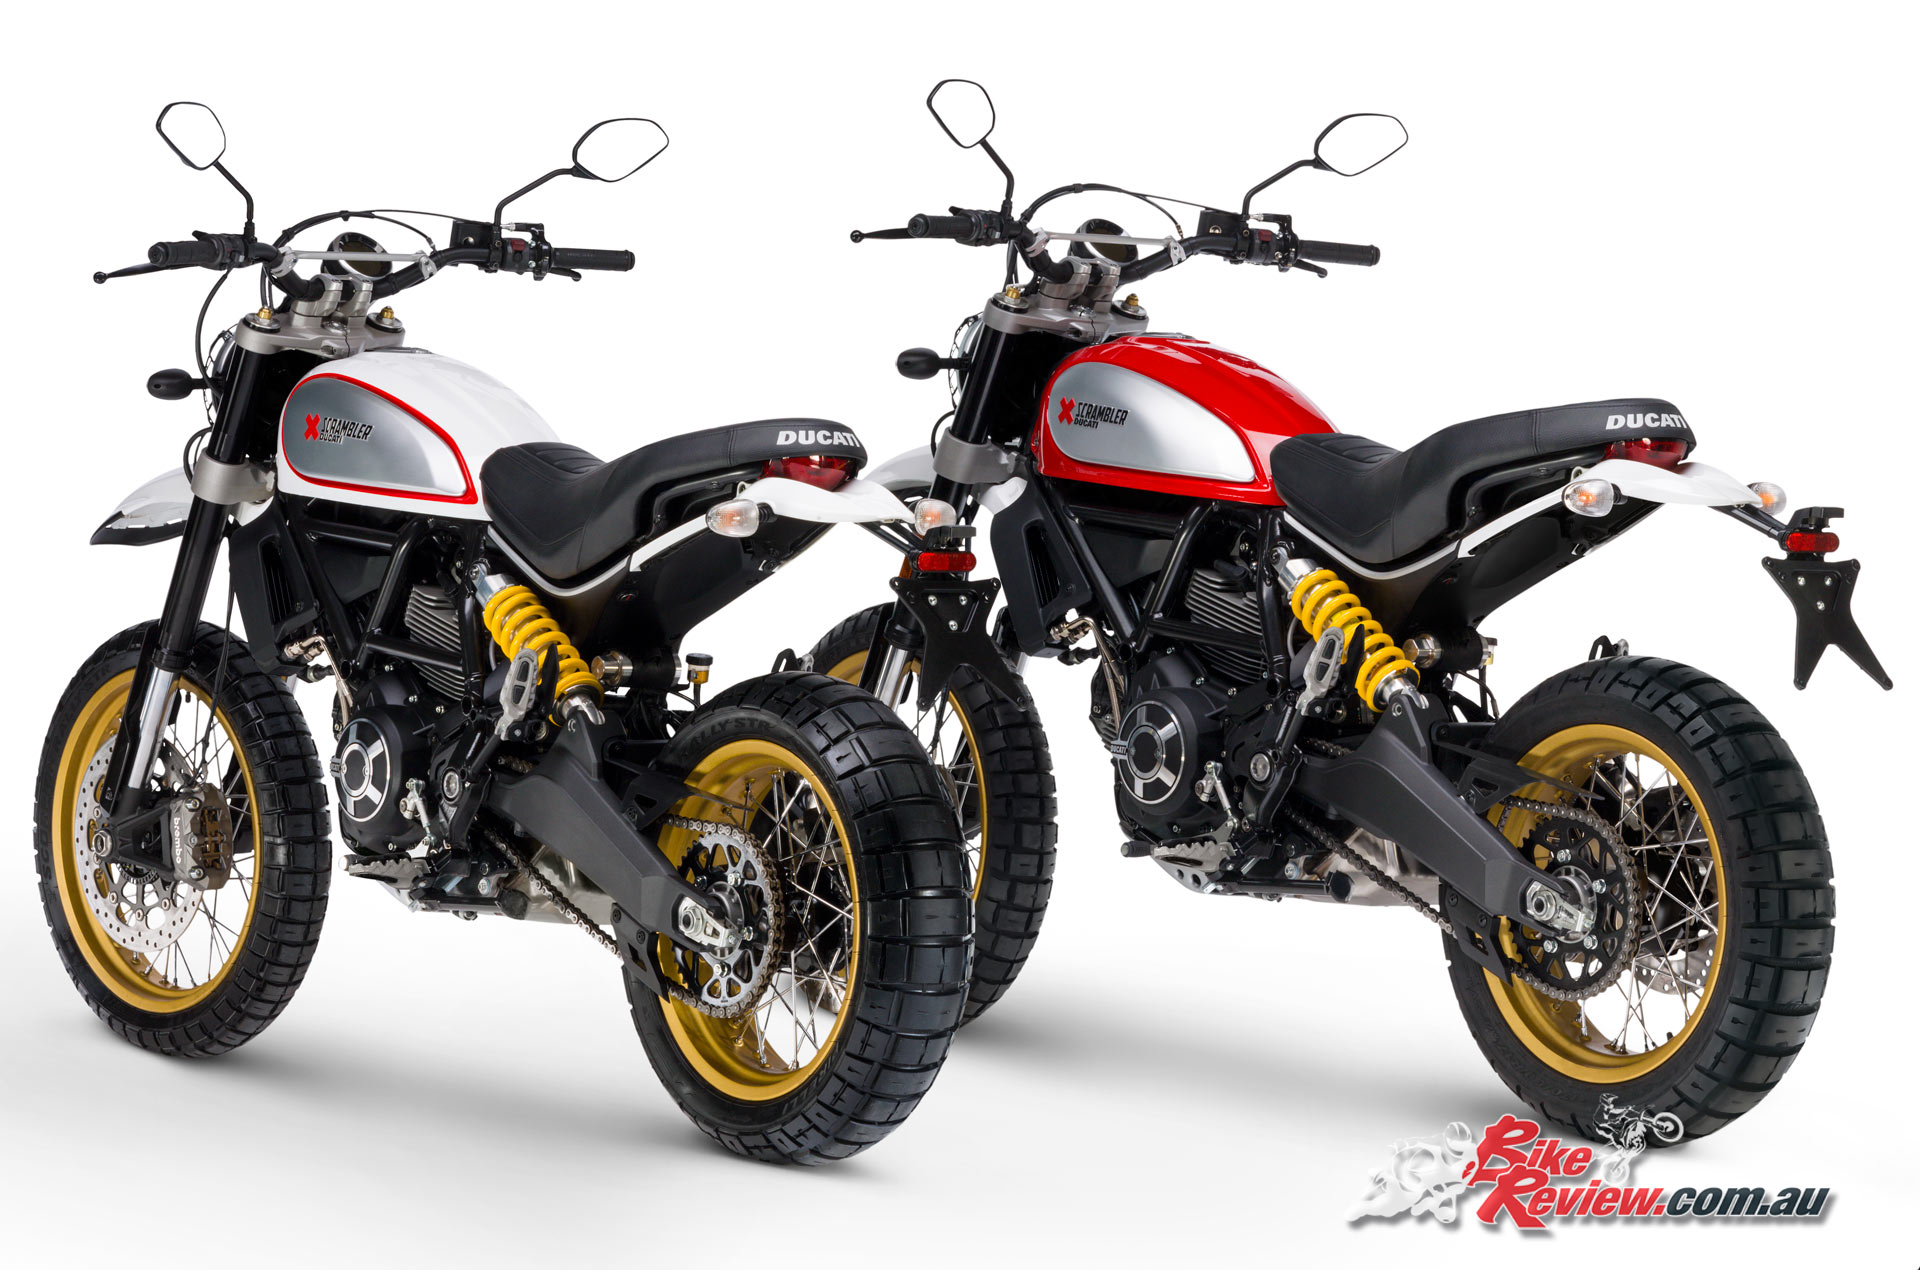 2017 ducati scrambler desert sled bike review. Black Bedroom Furniture Sets. Home Design Ideas